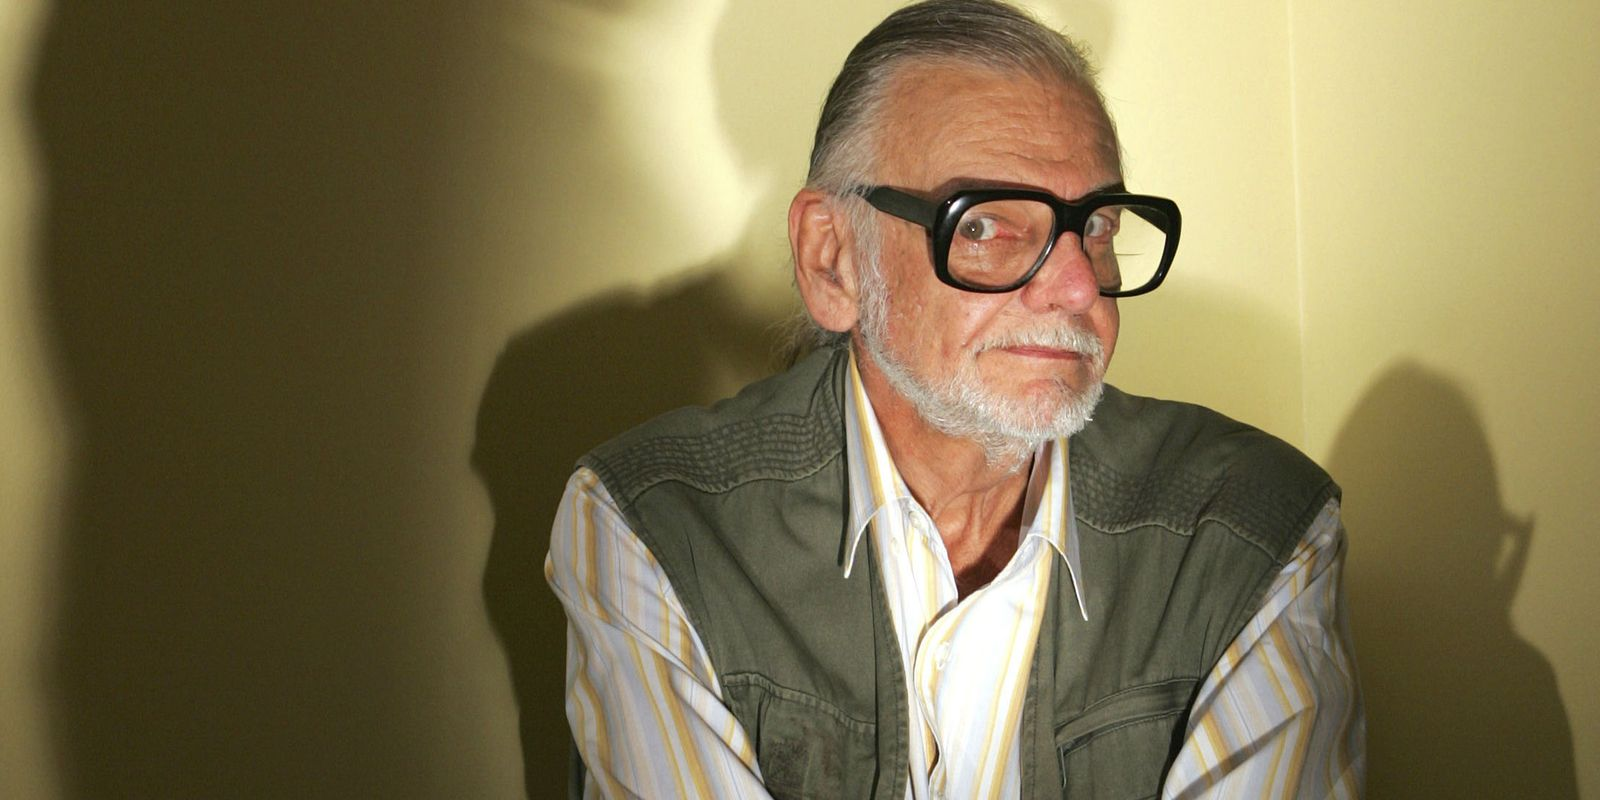 Walking Dead Producer Recalls George Romero Declining to Direct Episode